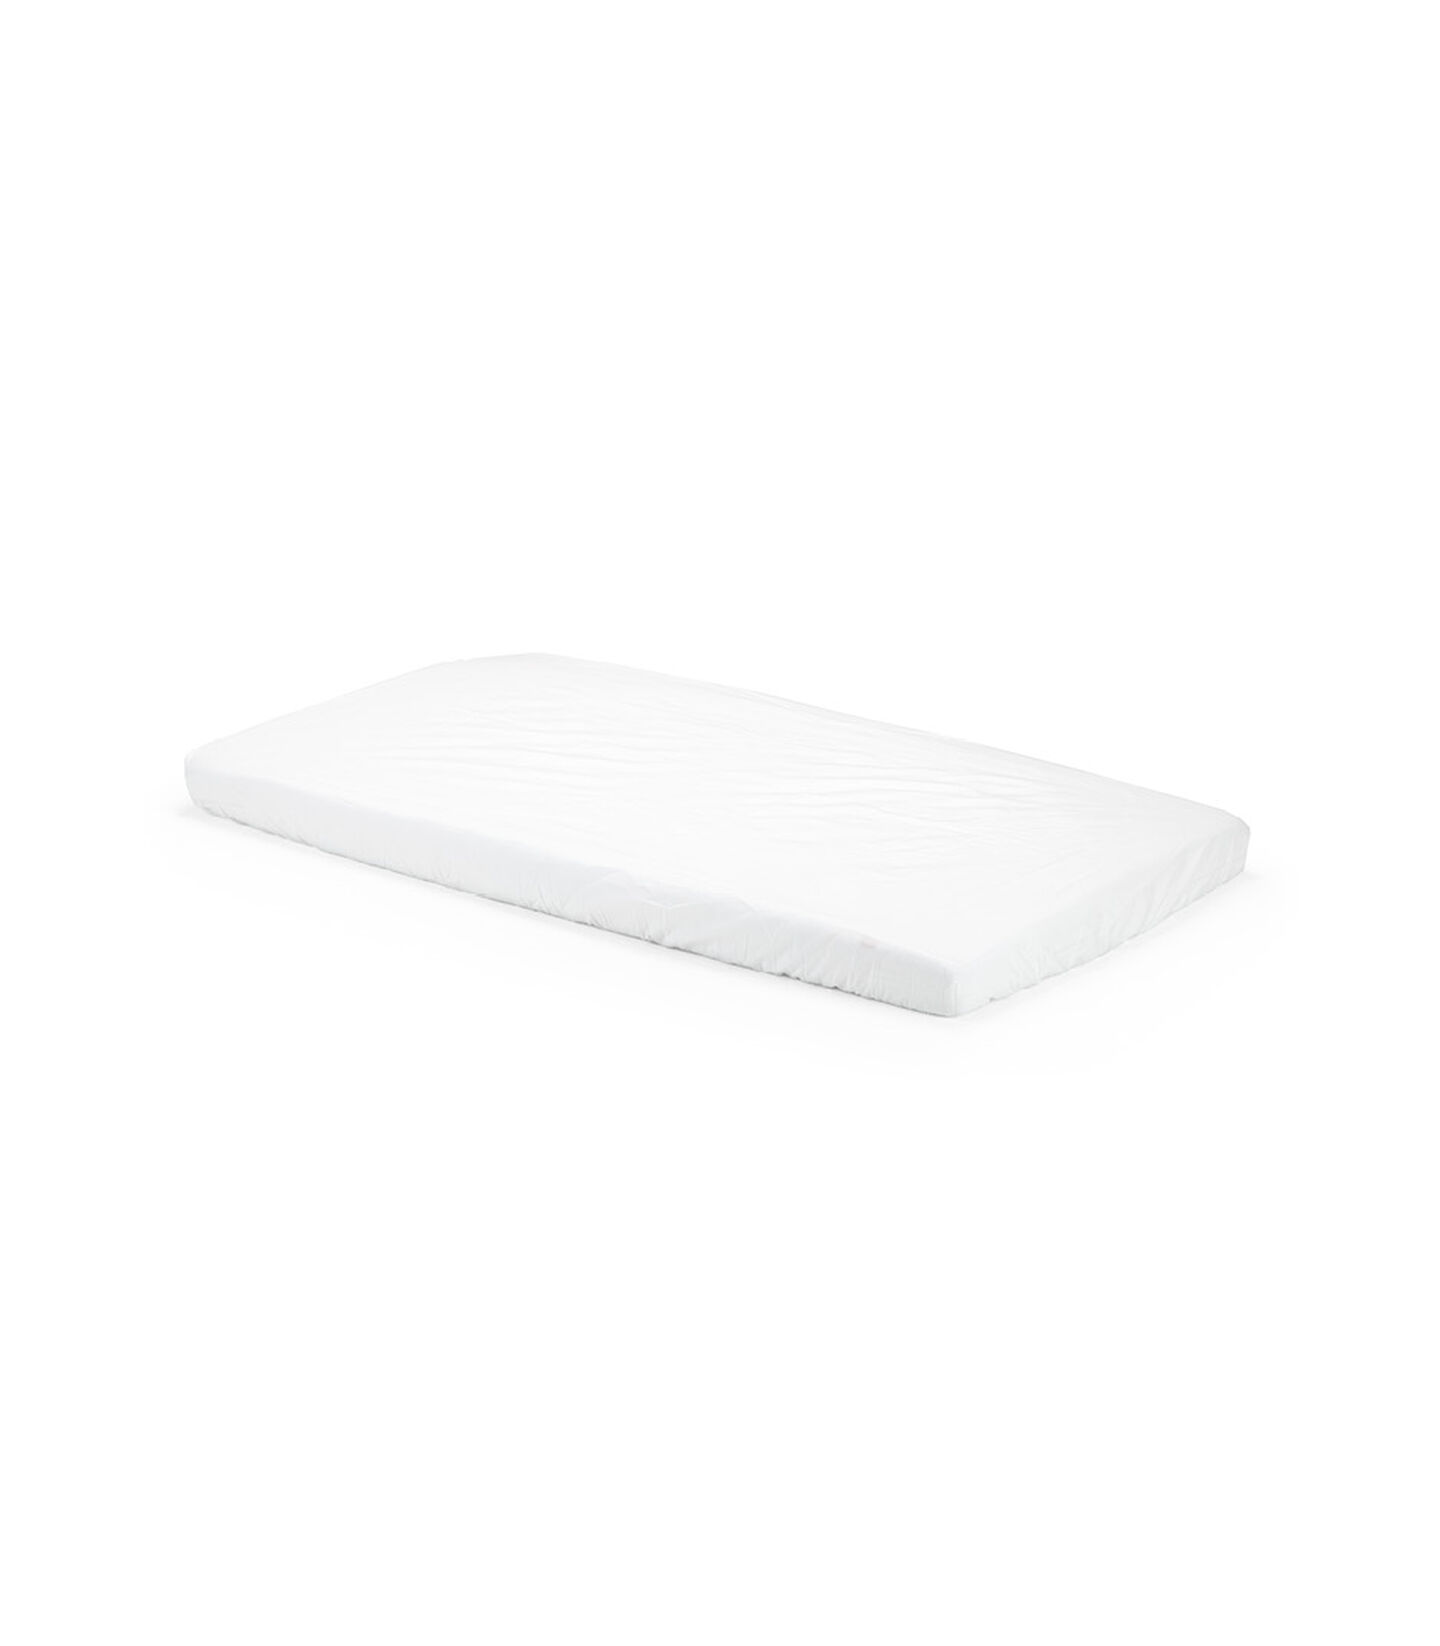 Stokke® Home™ Mattress. Fitted sheet sold separately.